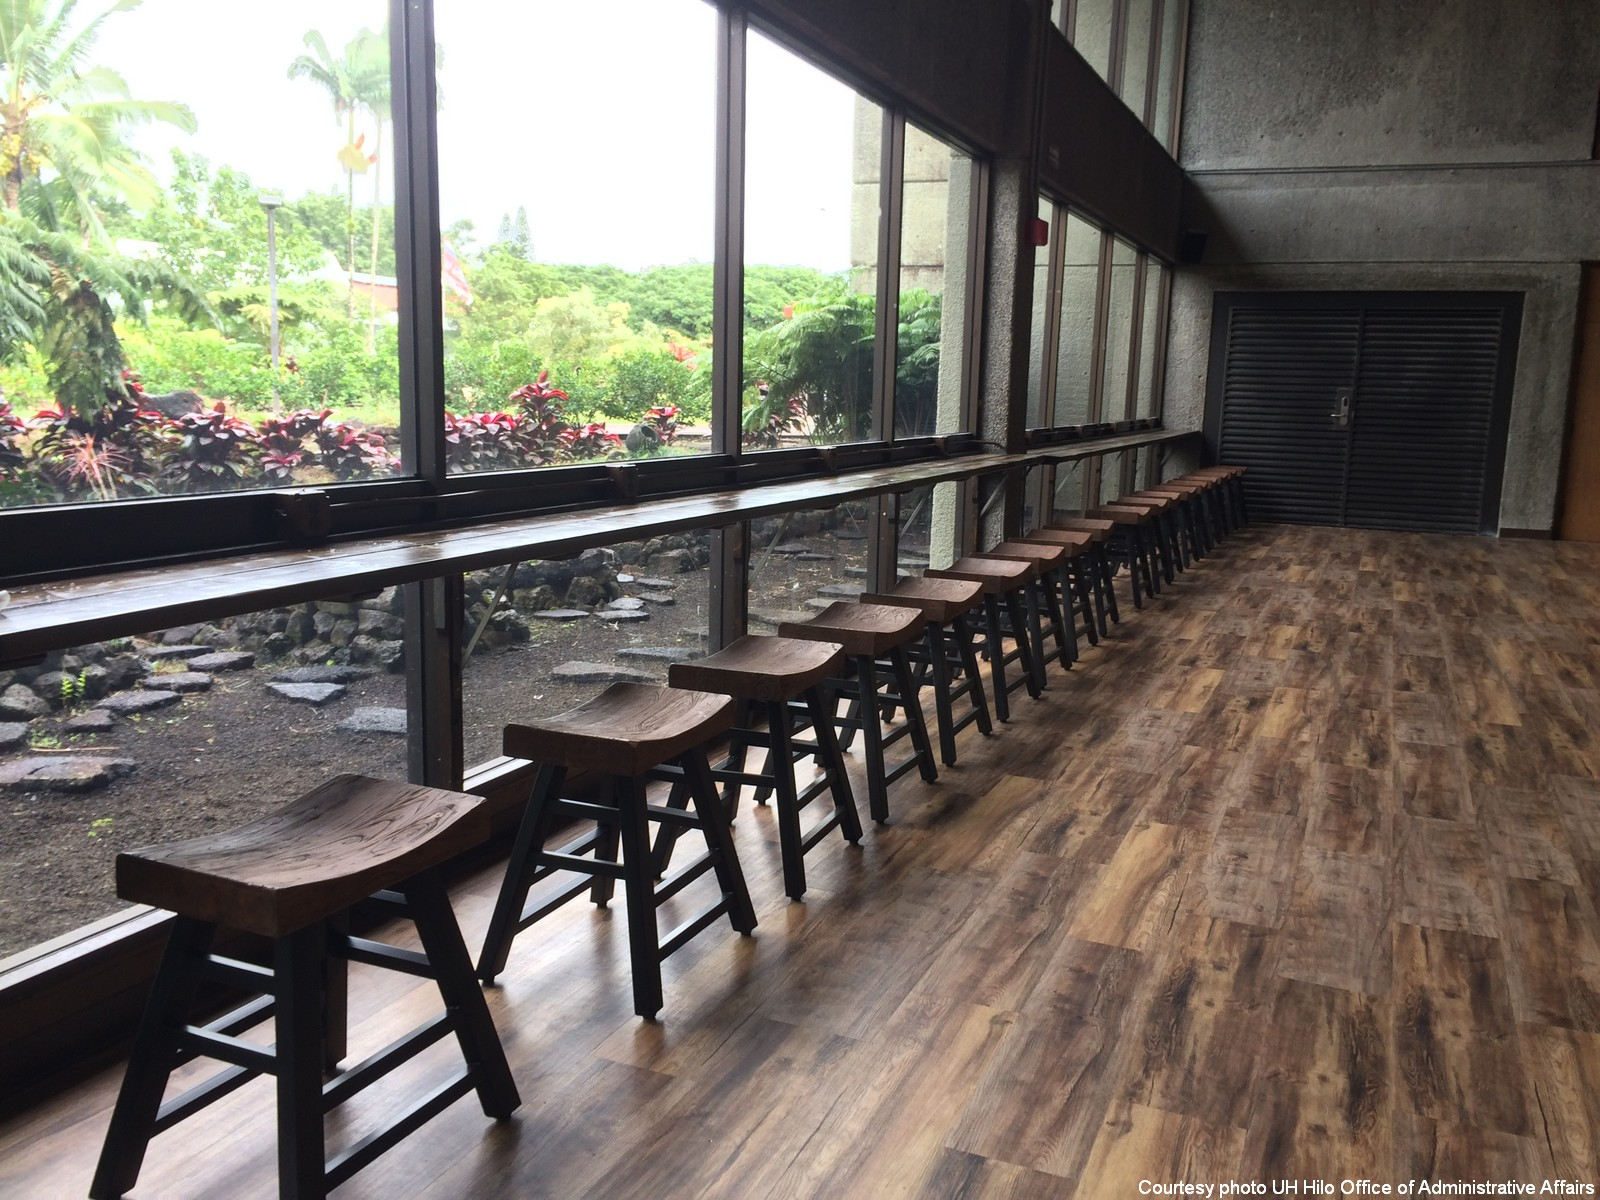 Rustic stools lined up at new rustic counter overlooking gardens.